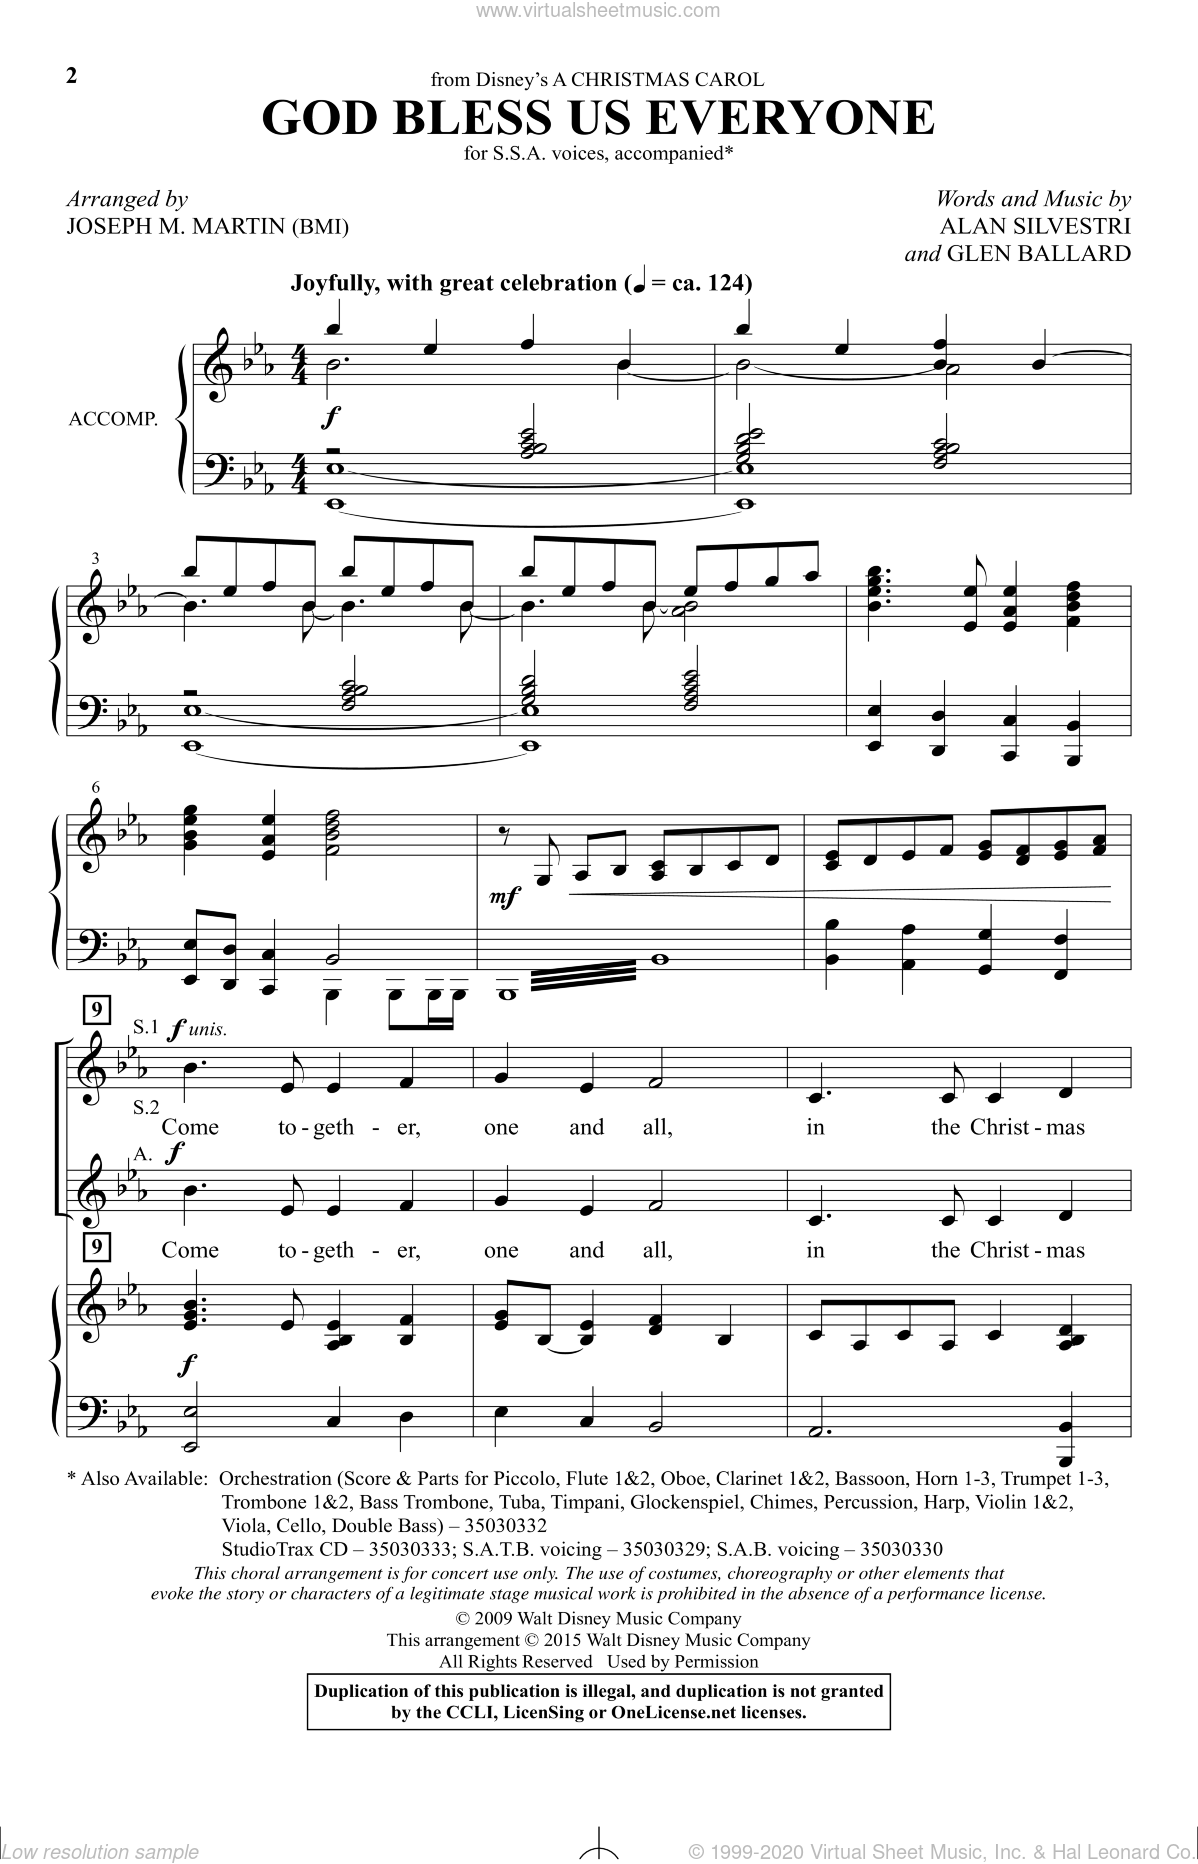 God Bless Us Everyone (from Disney's A Christmas Carol) sheet music for choir and piano (SSA) by Joseph M. Martin